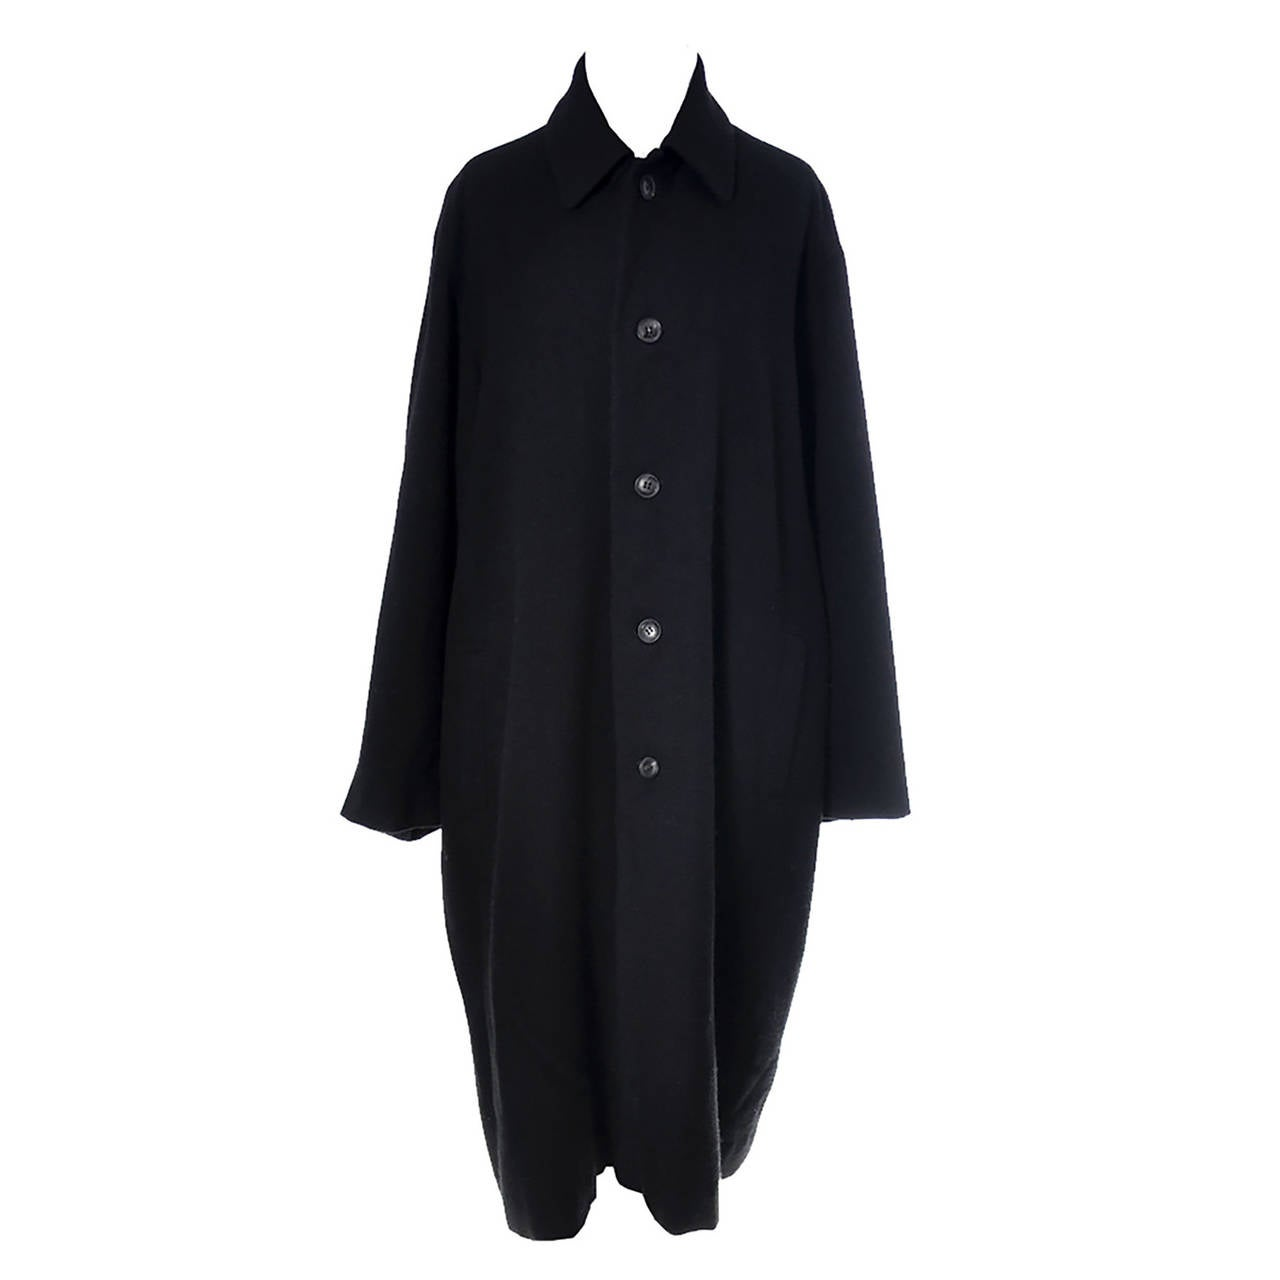 Yohji Yamamoto Ys Vintage Coat Black Wool Cocoon Japan For Sale